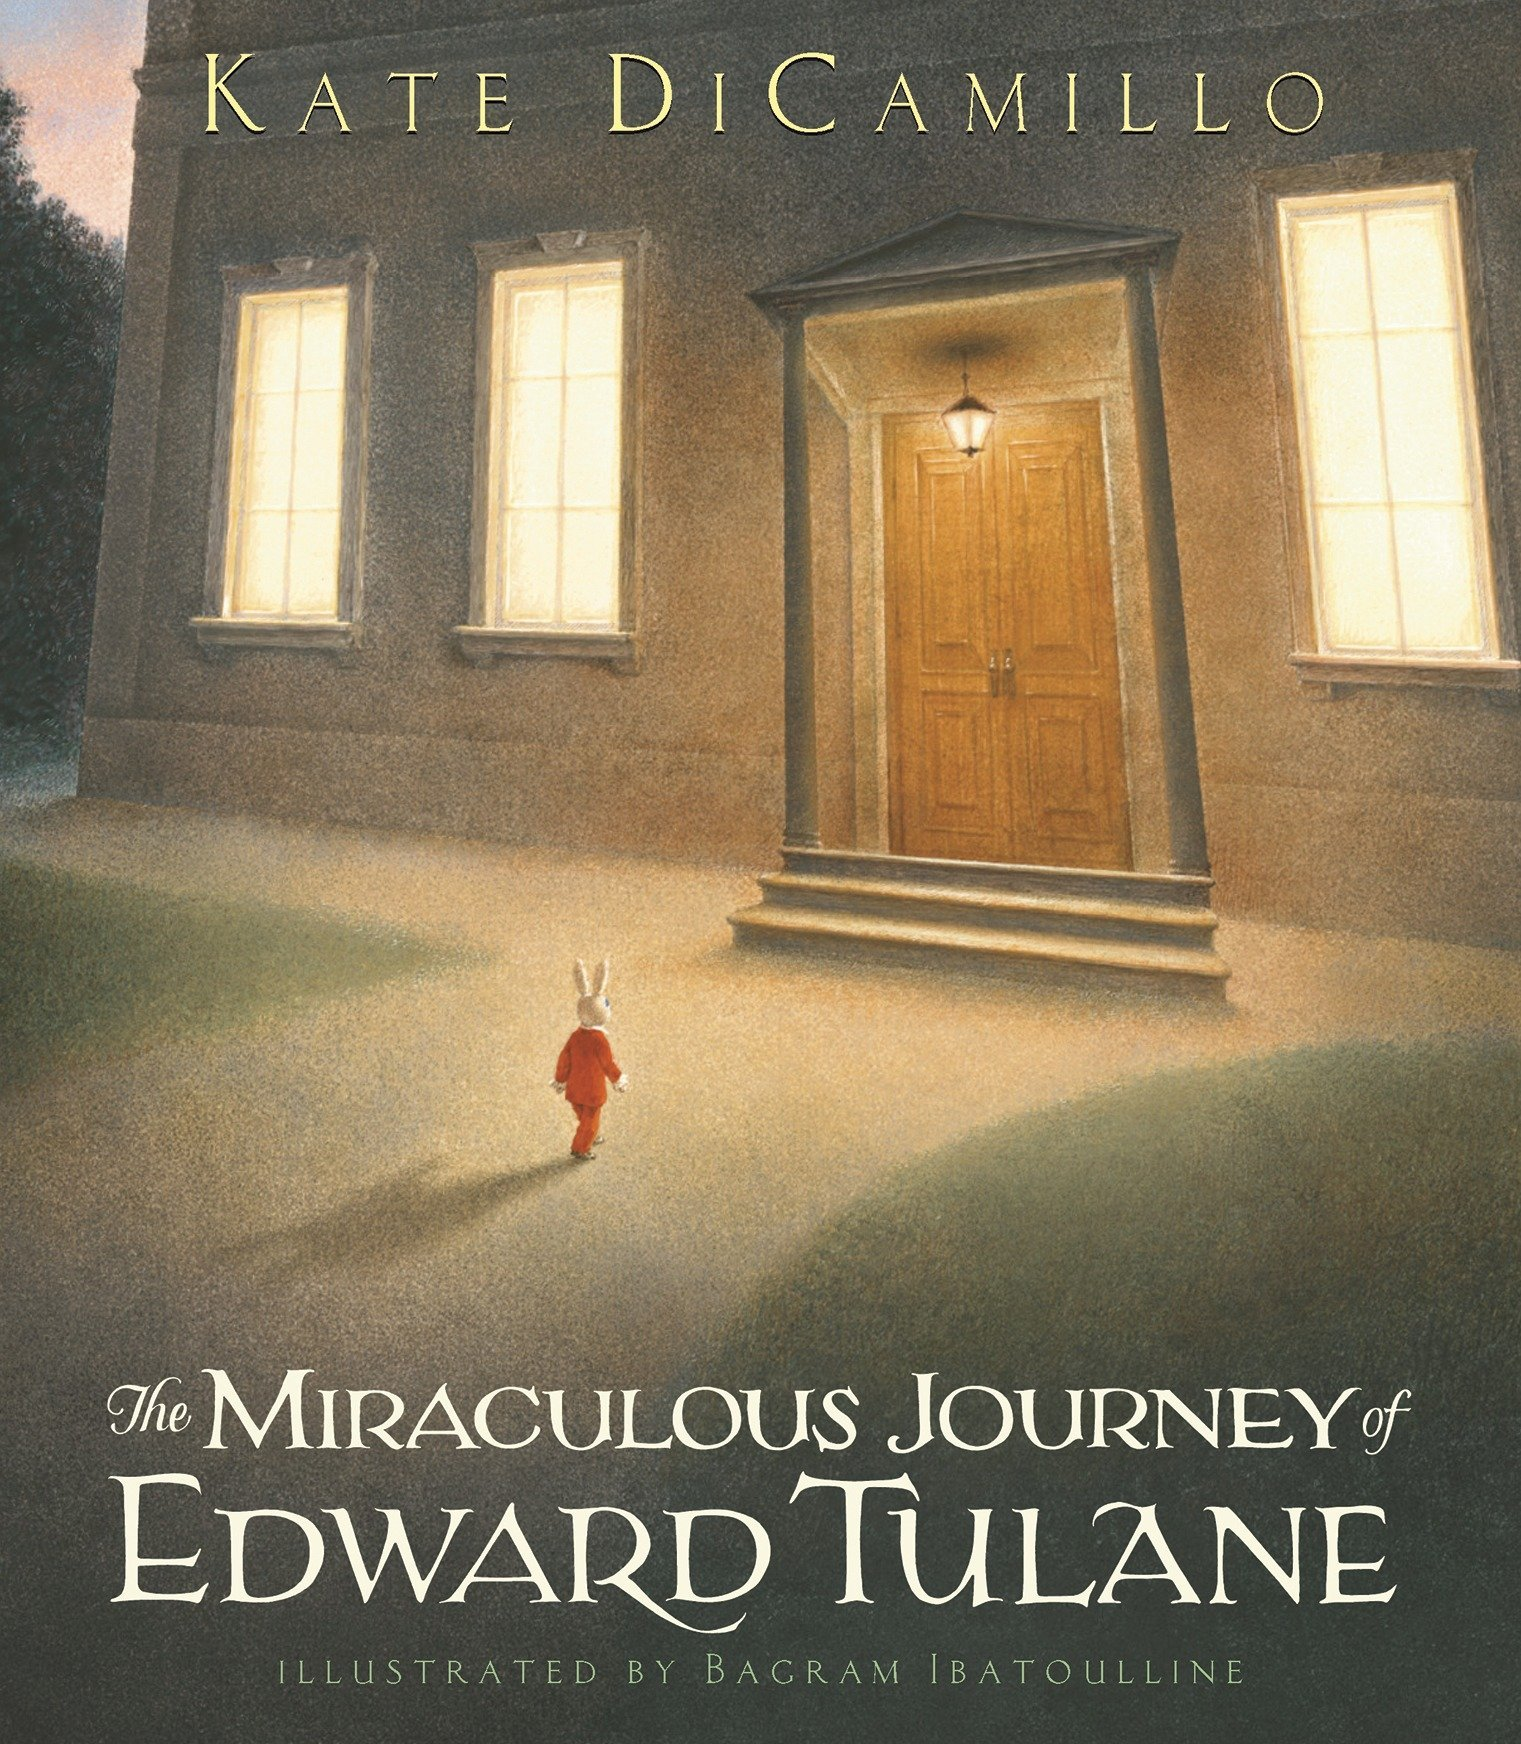 Image result for the miraculous journey of edward tulane